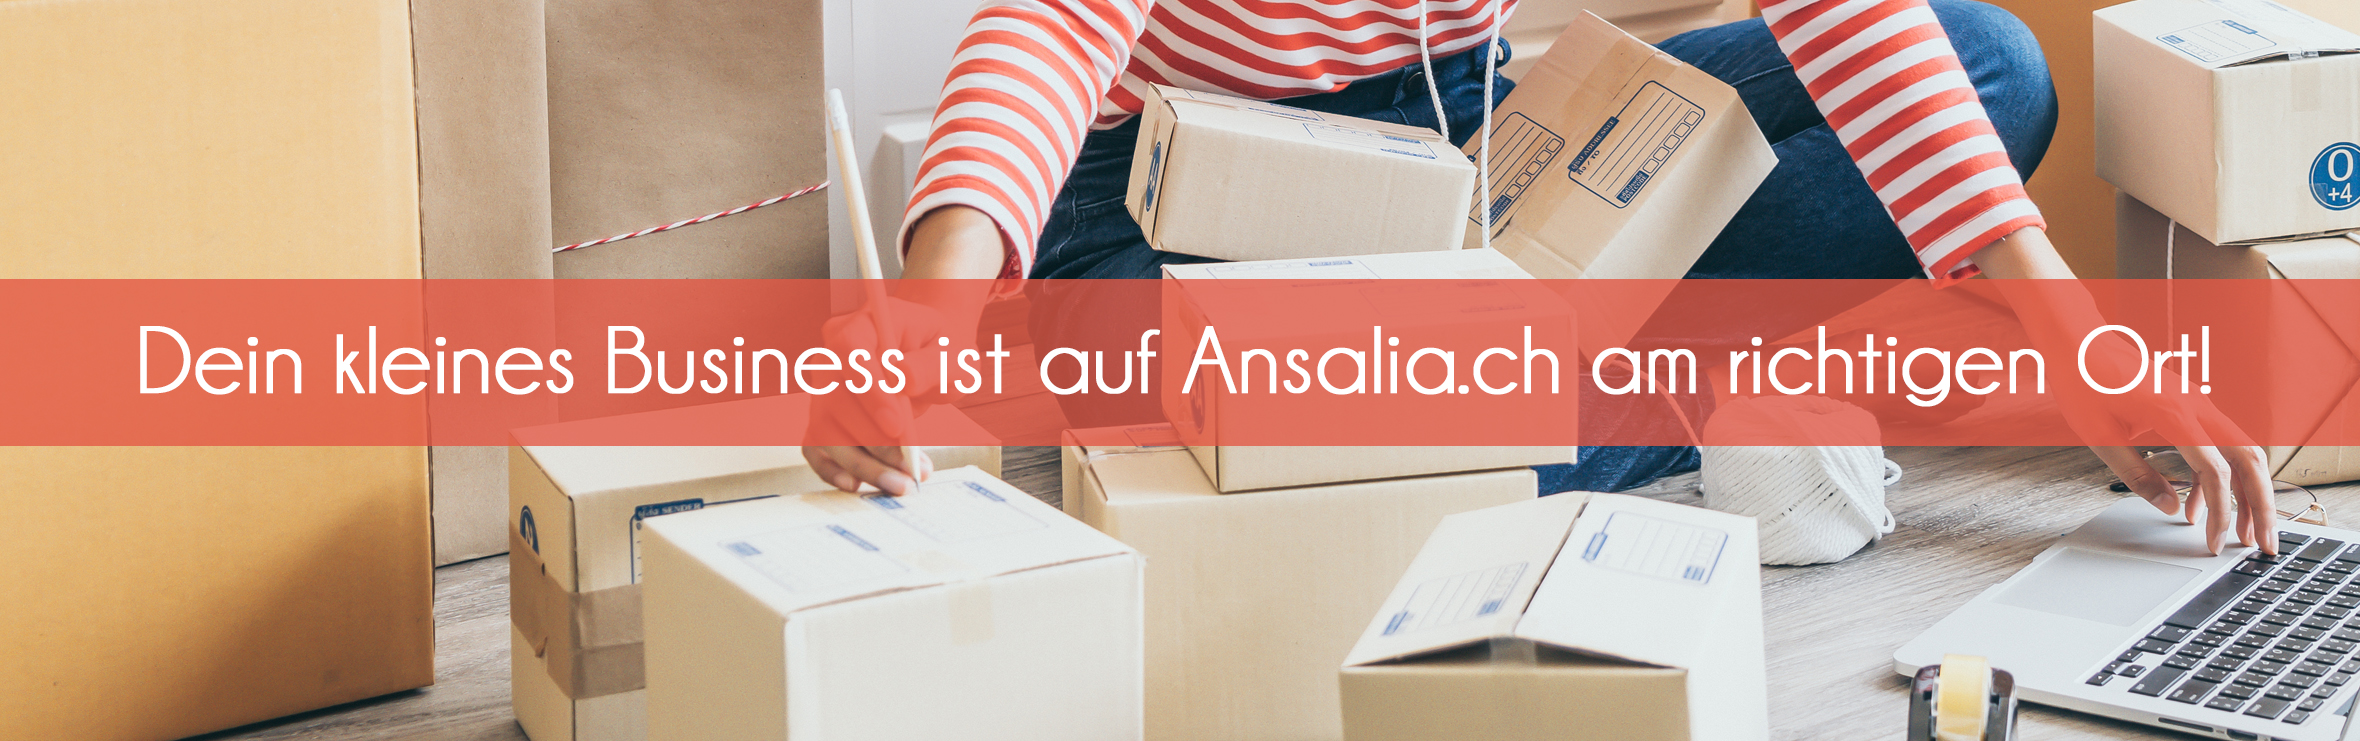 Business auf ansalia